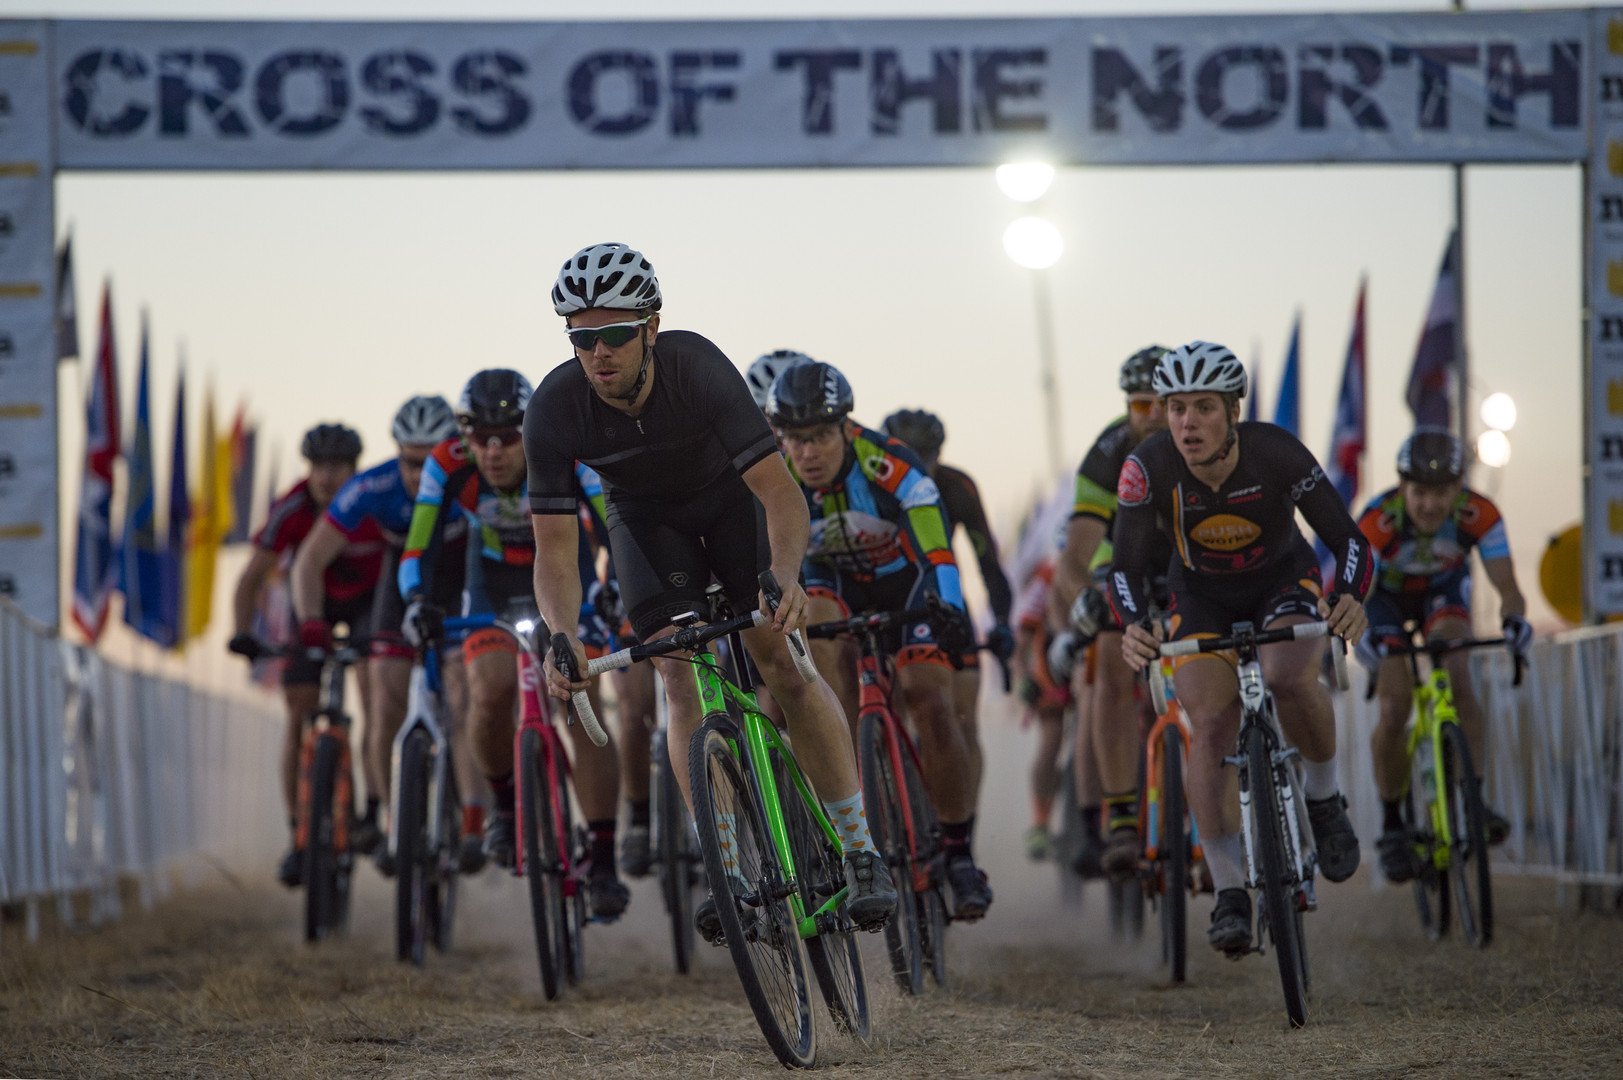 Riders compete in a single-speed race at Cross of the North in Loveland Friday, October 7, 2016. AUSTIN HUMPHREYS/THE COLORADOAN